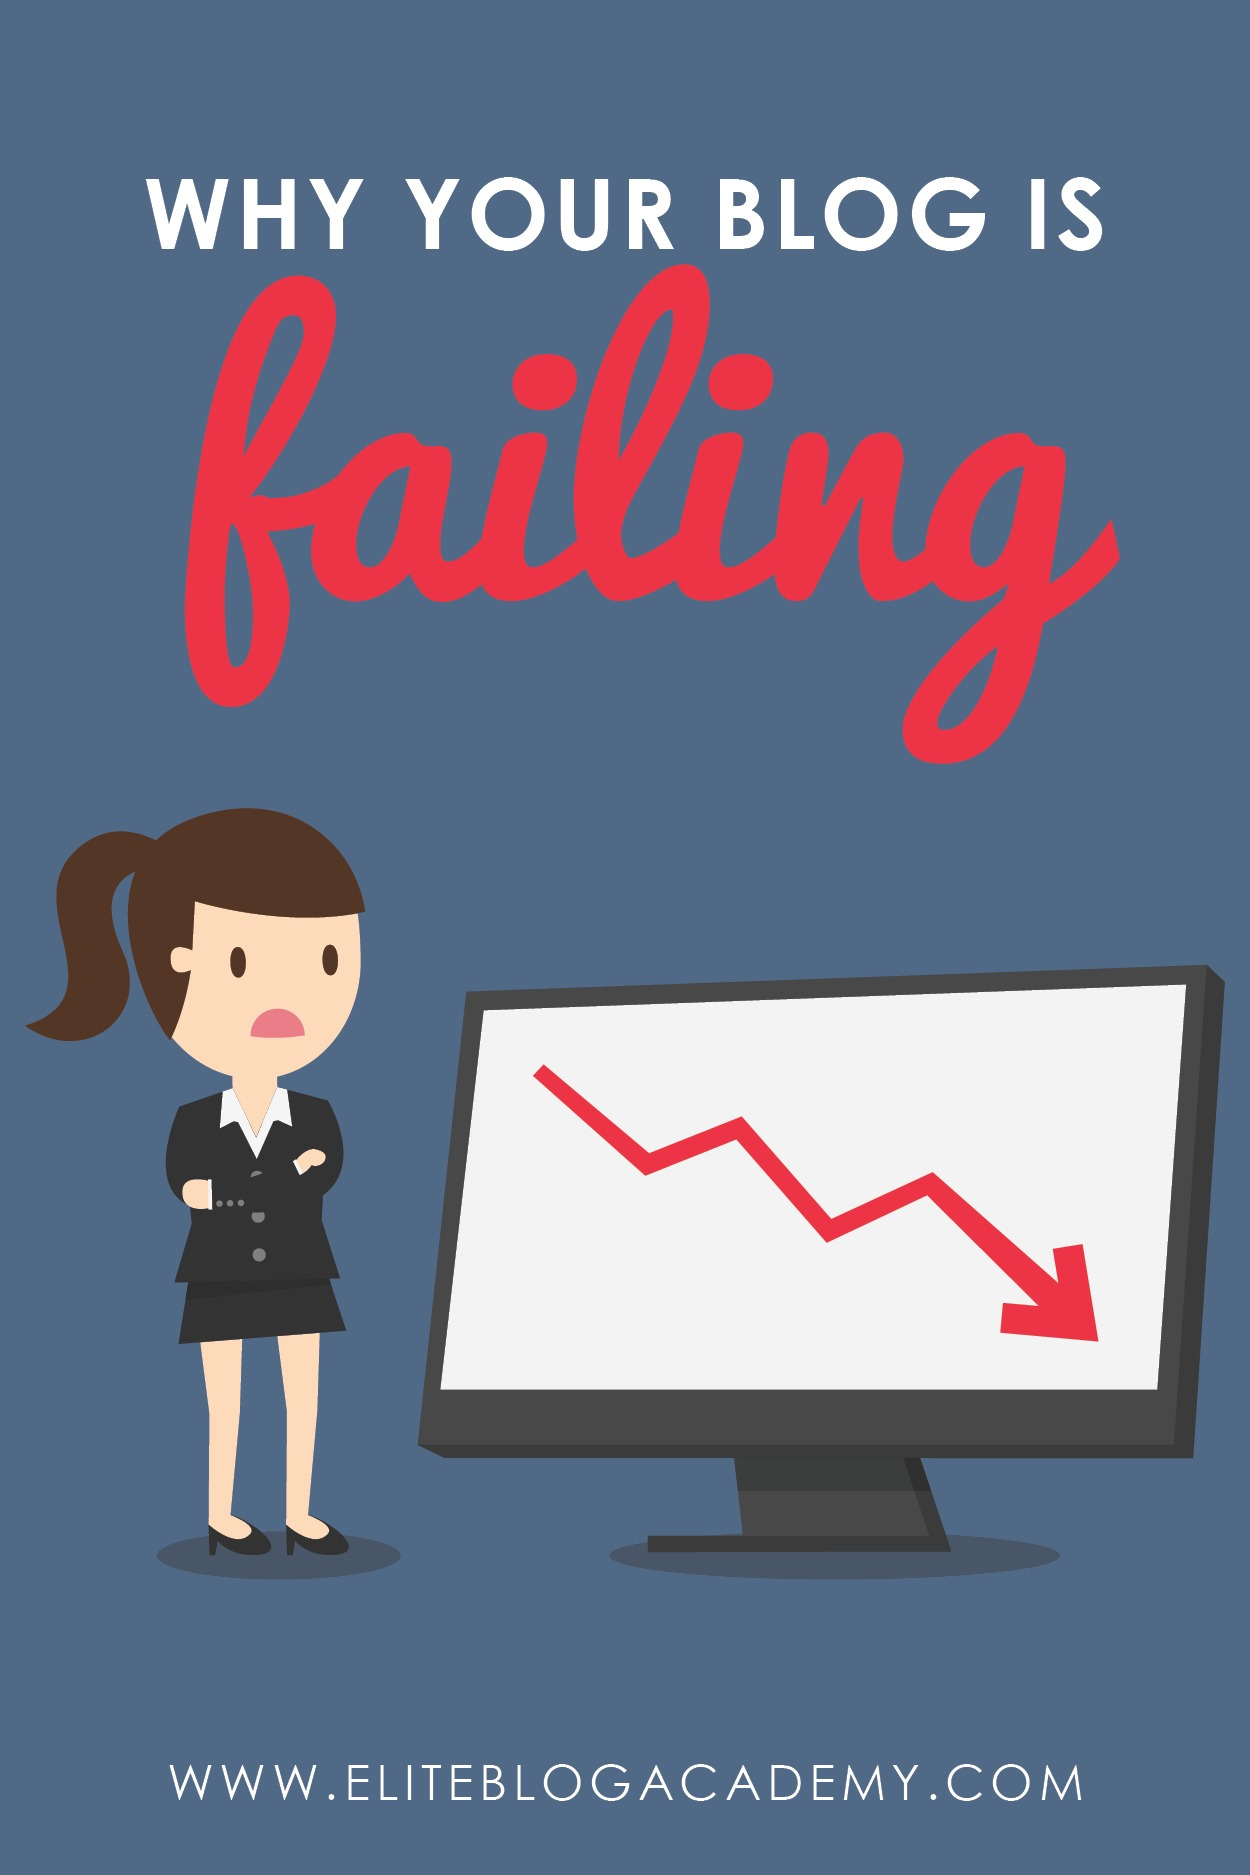 Blogging can feel pretty scary sometimes. Am I failing? Why am I not growing fast enough? Here are 4 big mistakes you're making that will set your blog up for failure (& how to change them)!